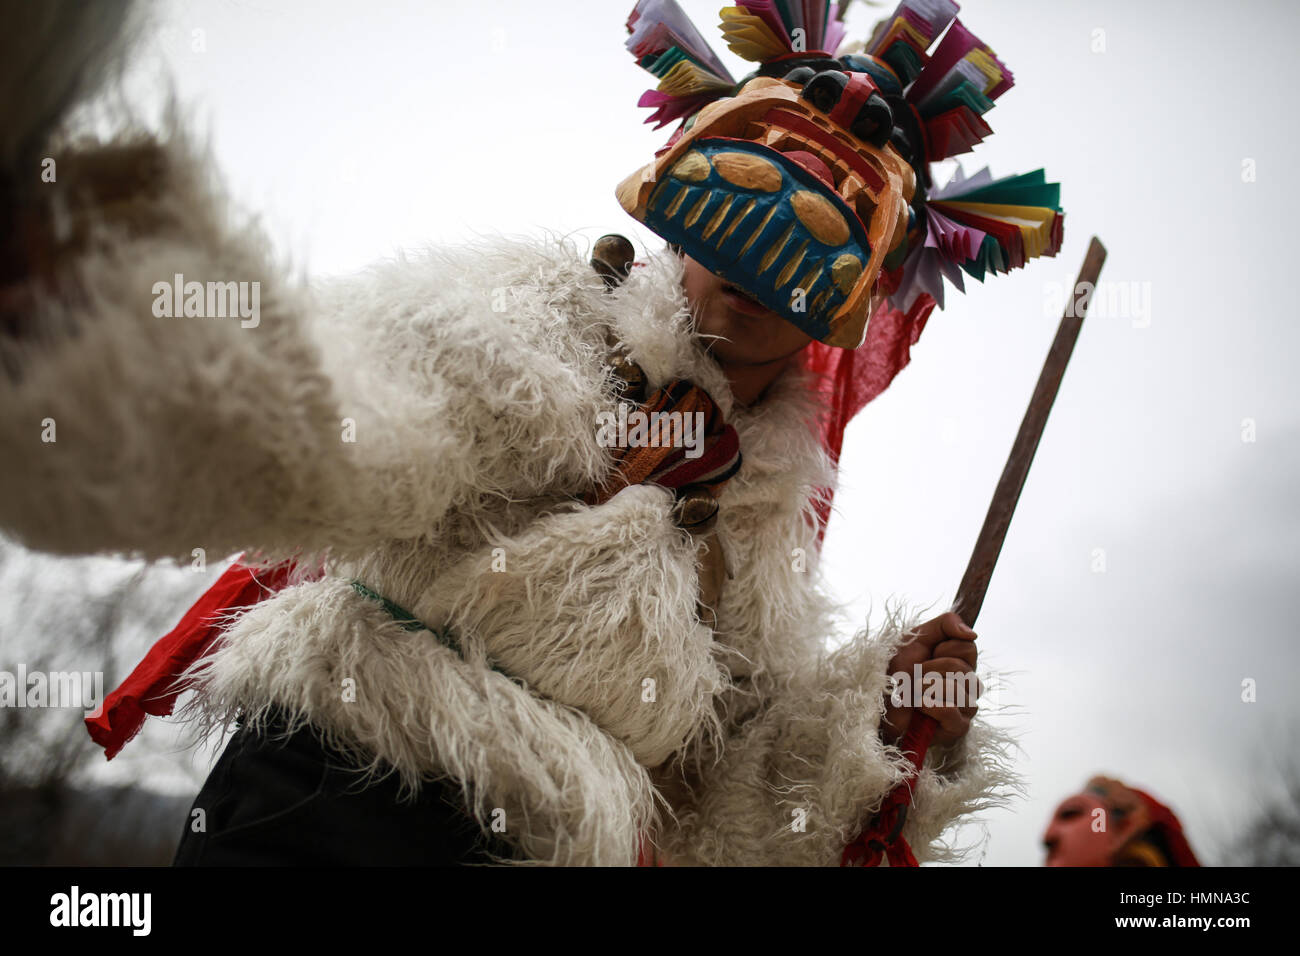 (170210) -- LONGNAN, Feb. 10, 2017 (Xinhua) -- A villager performs Chigezhou, or 'Dance for the Gods of Mountains', - Stock Image